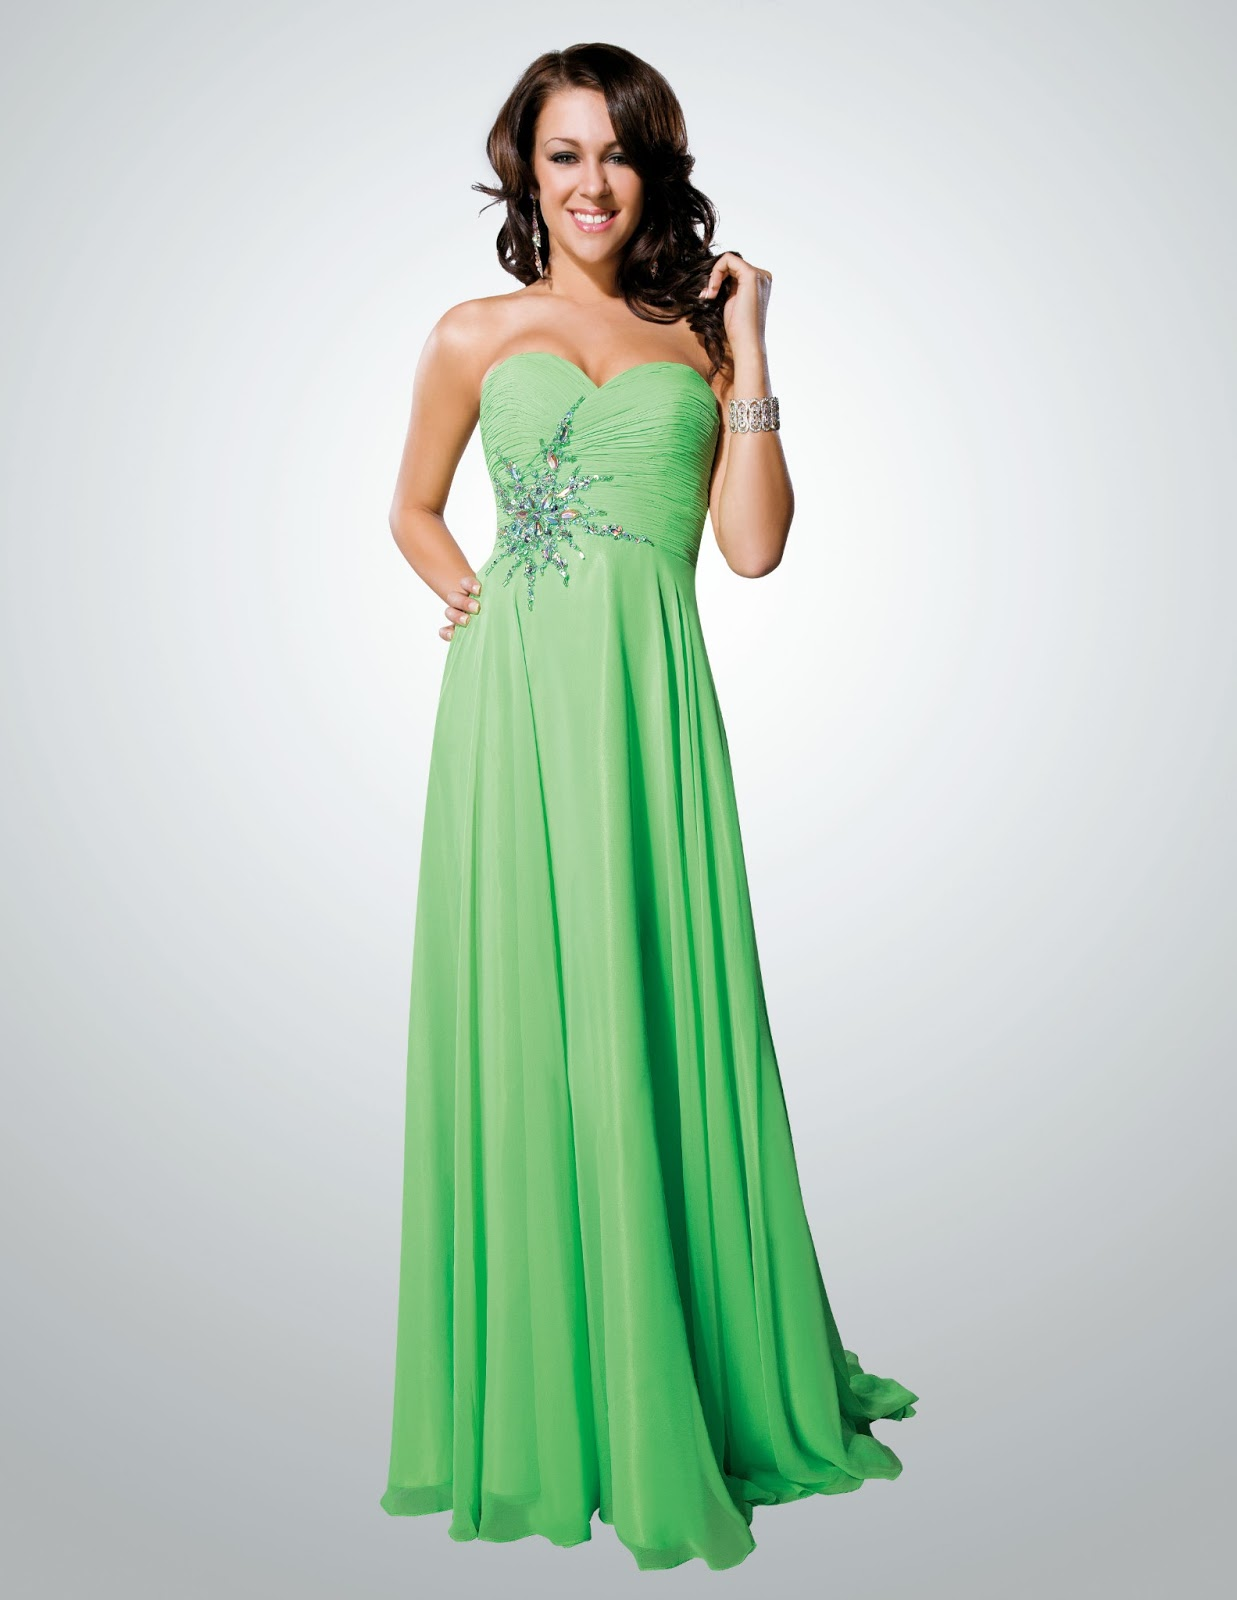 DressyBridal: Go with Green for Your Prom Night!